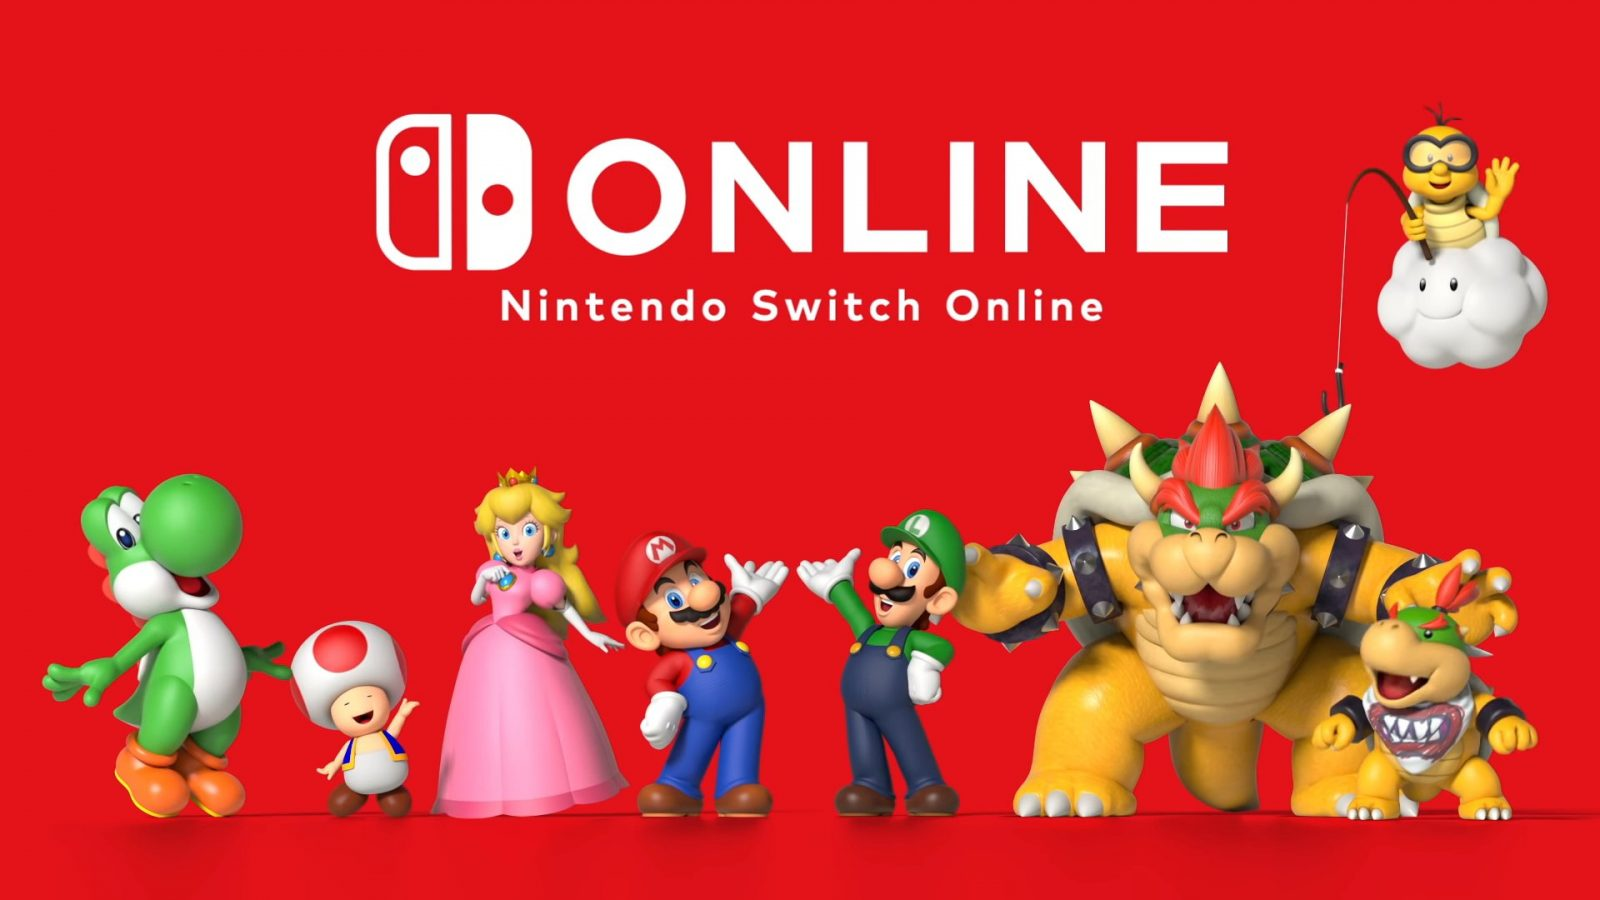 Nintendo Switch Online Gets New NES Games, Rewind Feature On July 17th